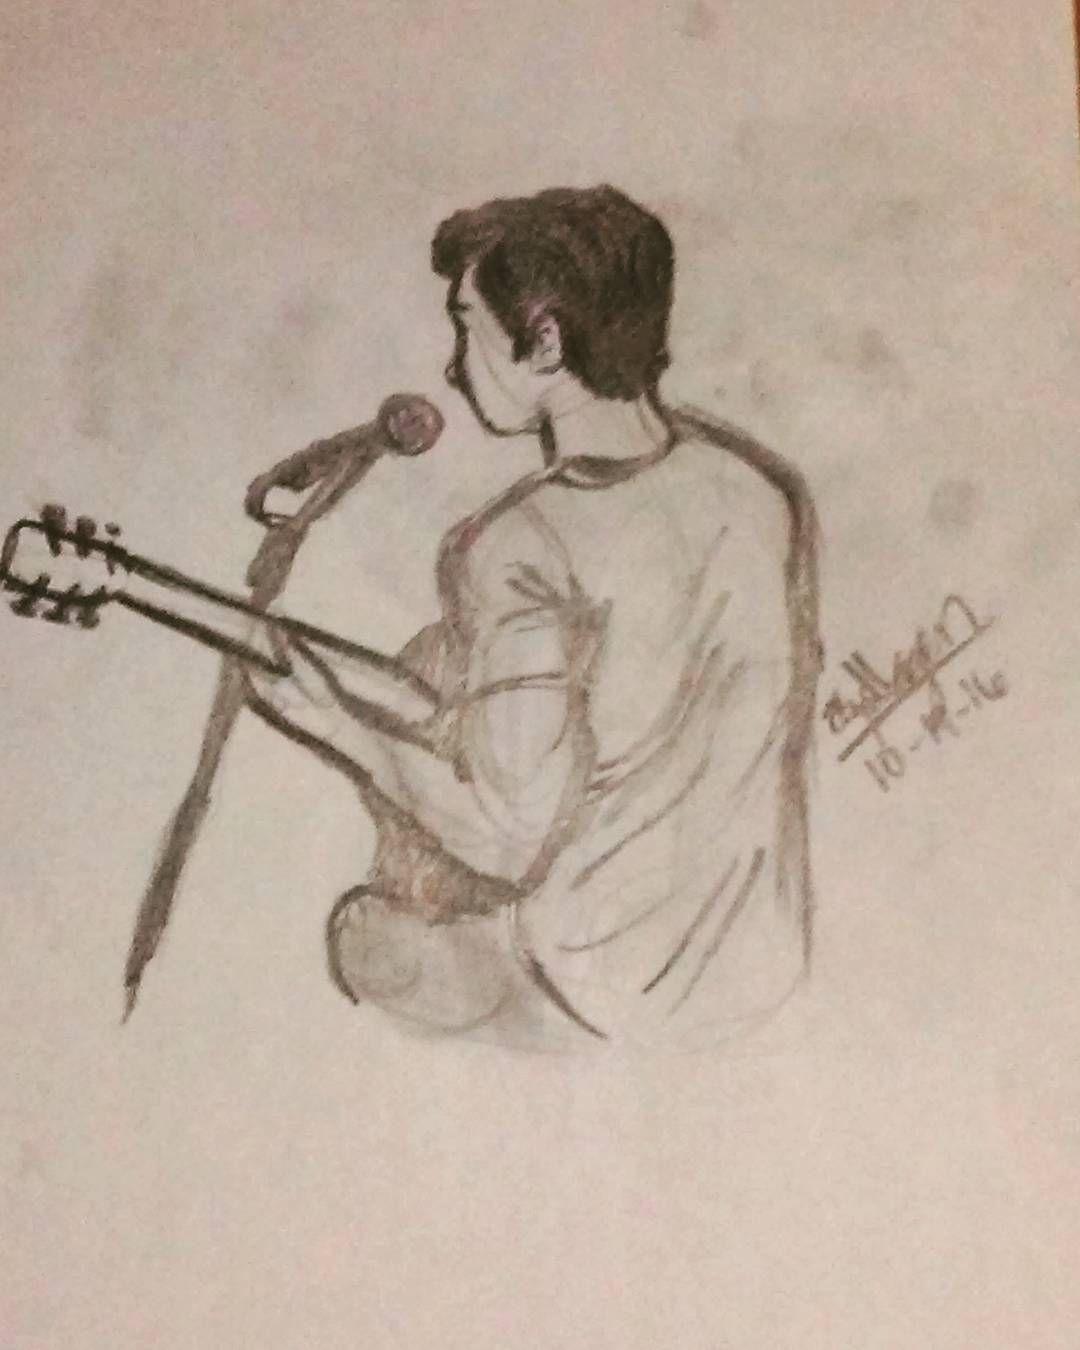 Boy with guitar singer musician based on joey barreiro pencil drawing by eliza